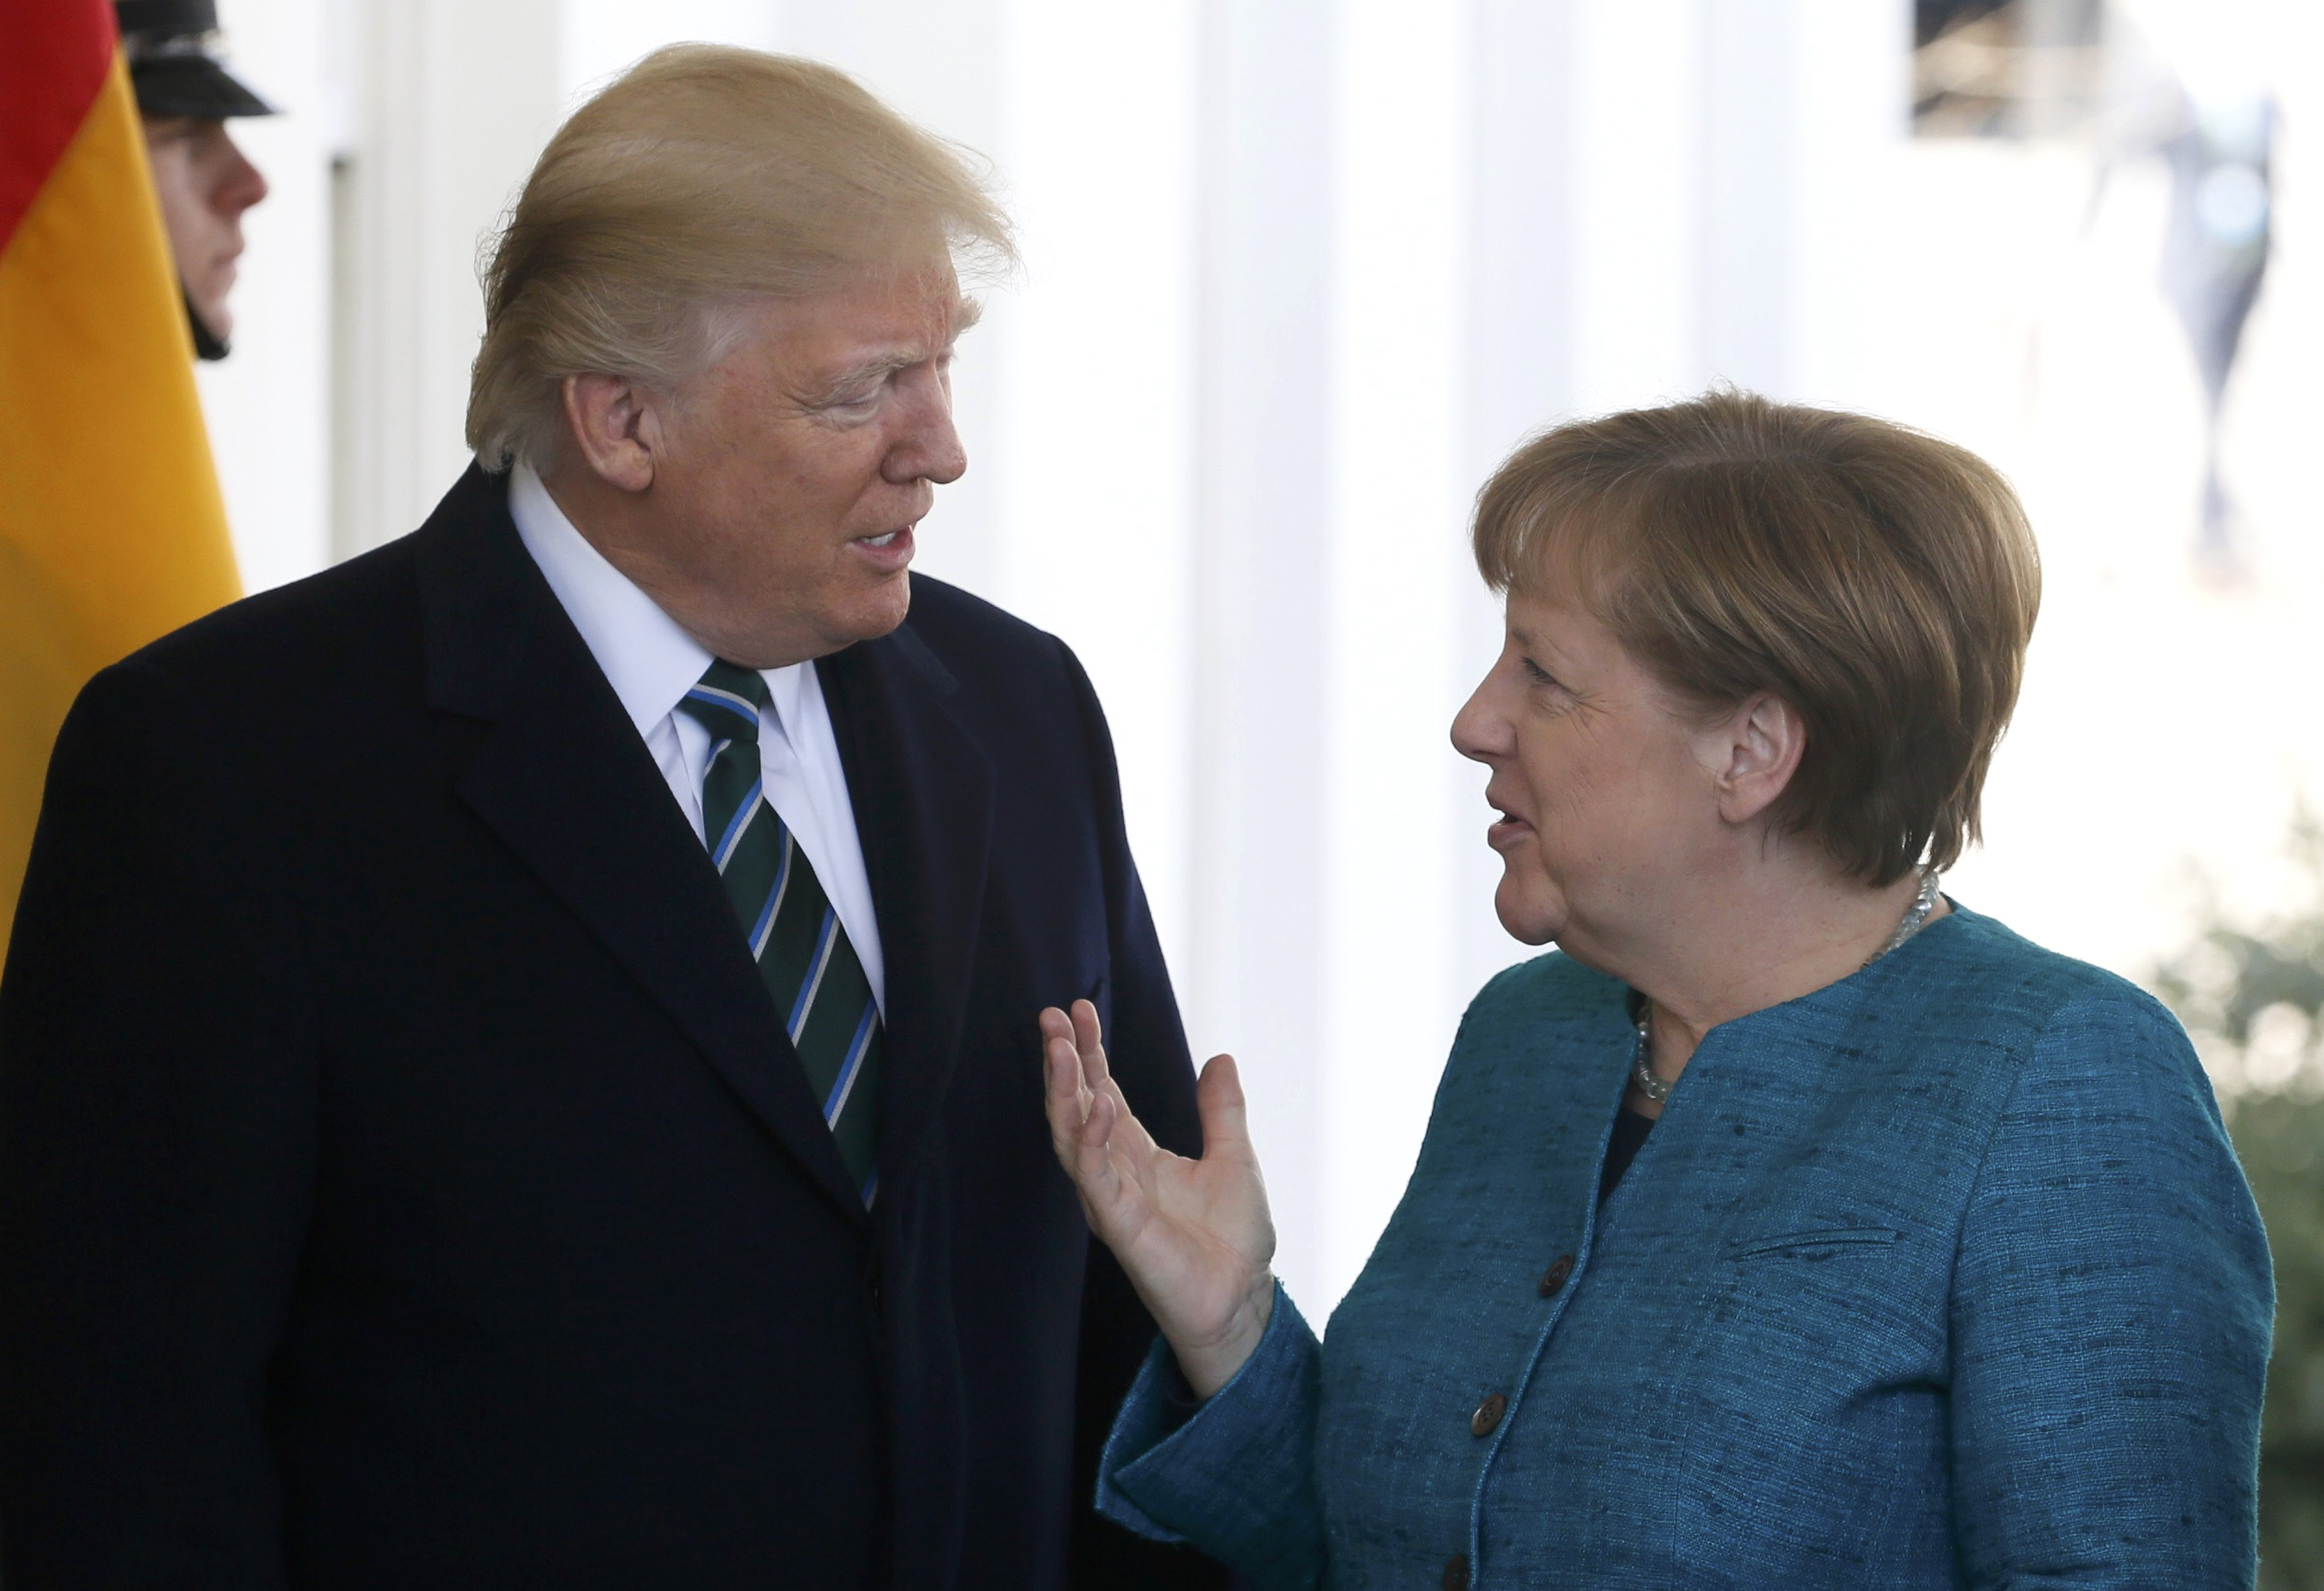 U.S. President Donald Trump welcomes German Chancellor Angela Merkel at the White House in Washington, U.S., March 17, 2017.   REUTERS/Jim Bourg